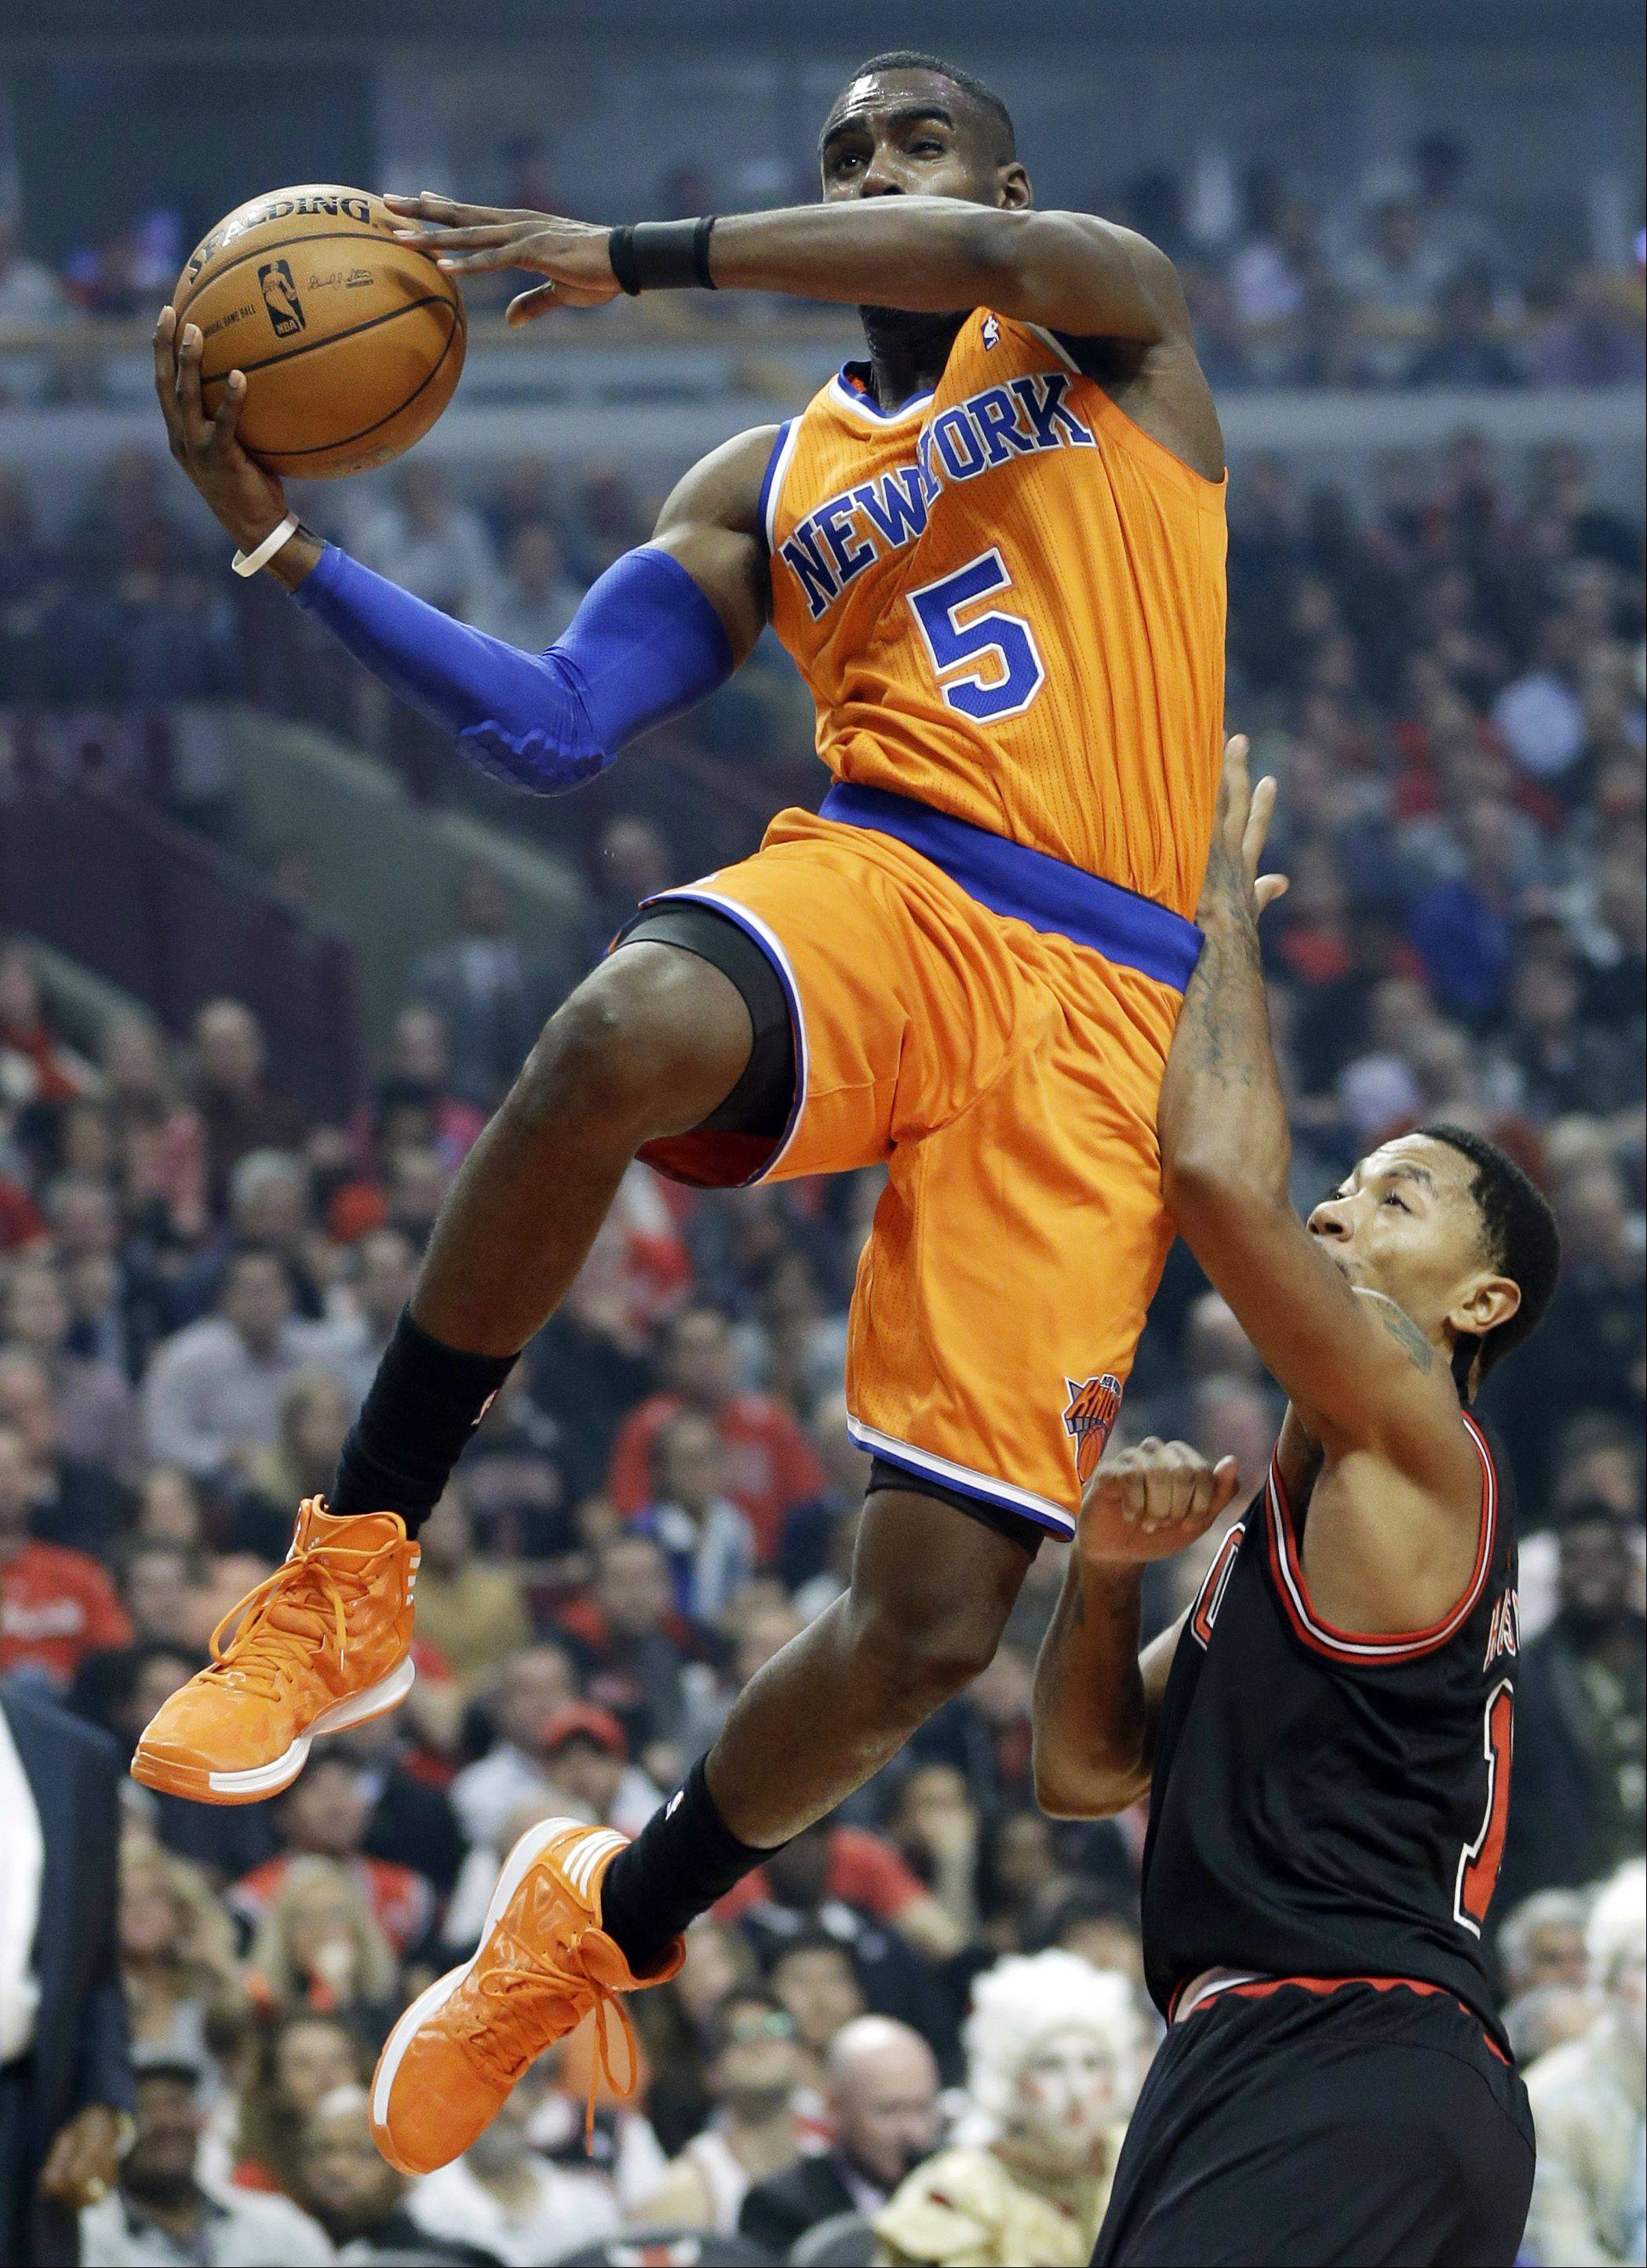 New York Knicks guard Tim Hardaway Jr. (5) drives to the basket against Chicago Bulls guard Derrick Rose during the first half.